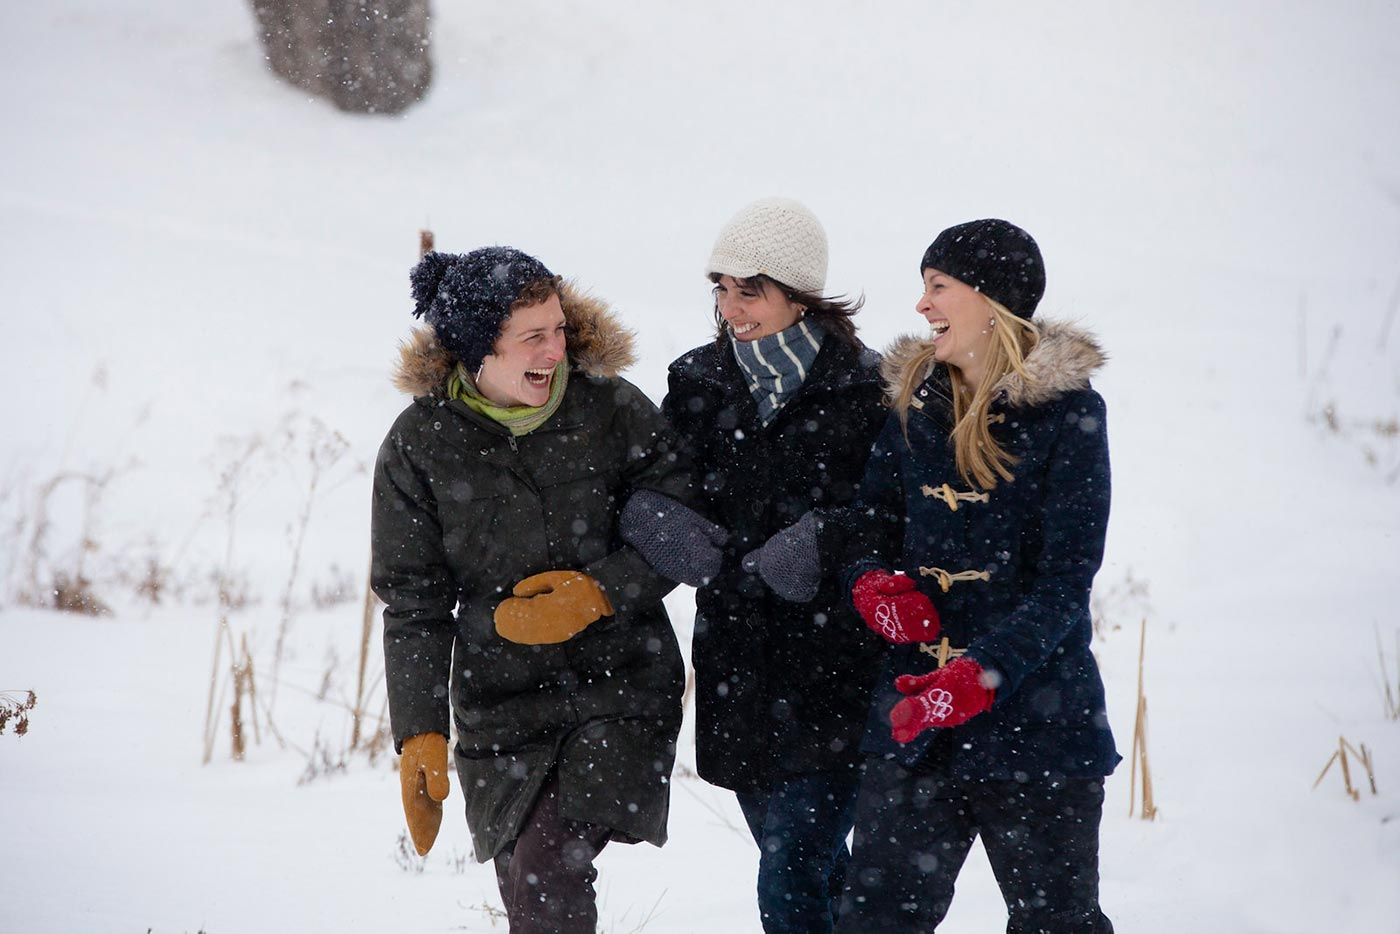 Three friends laughing in the winter snow